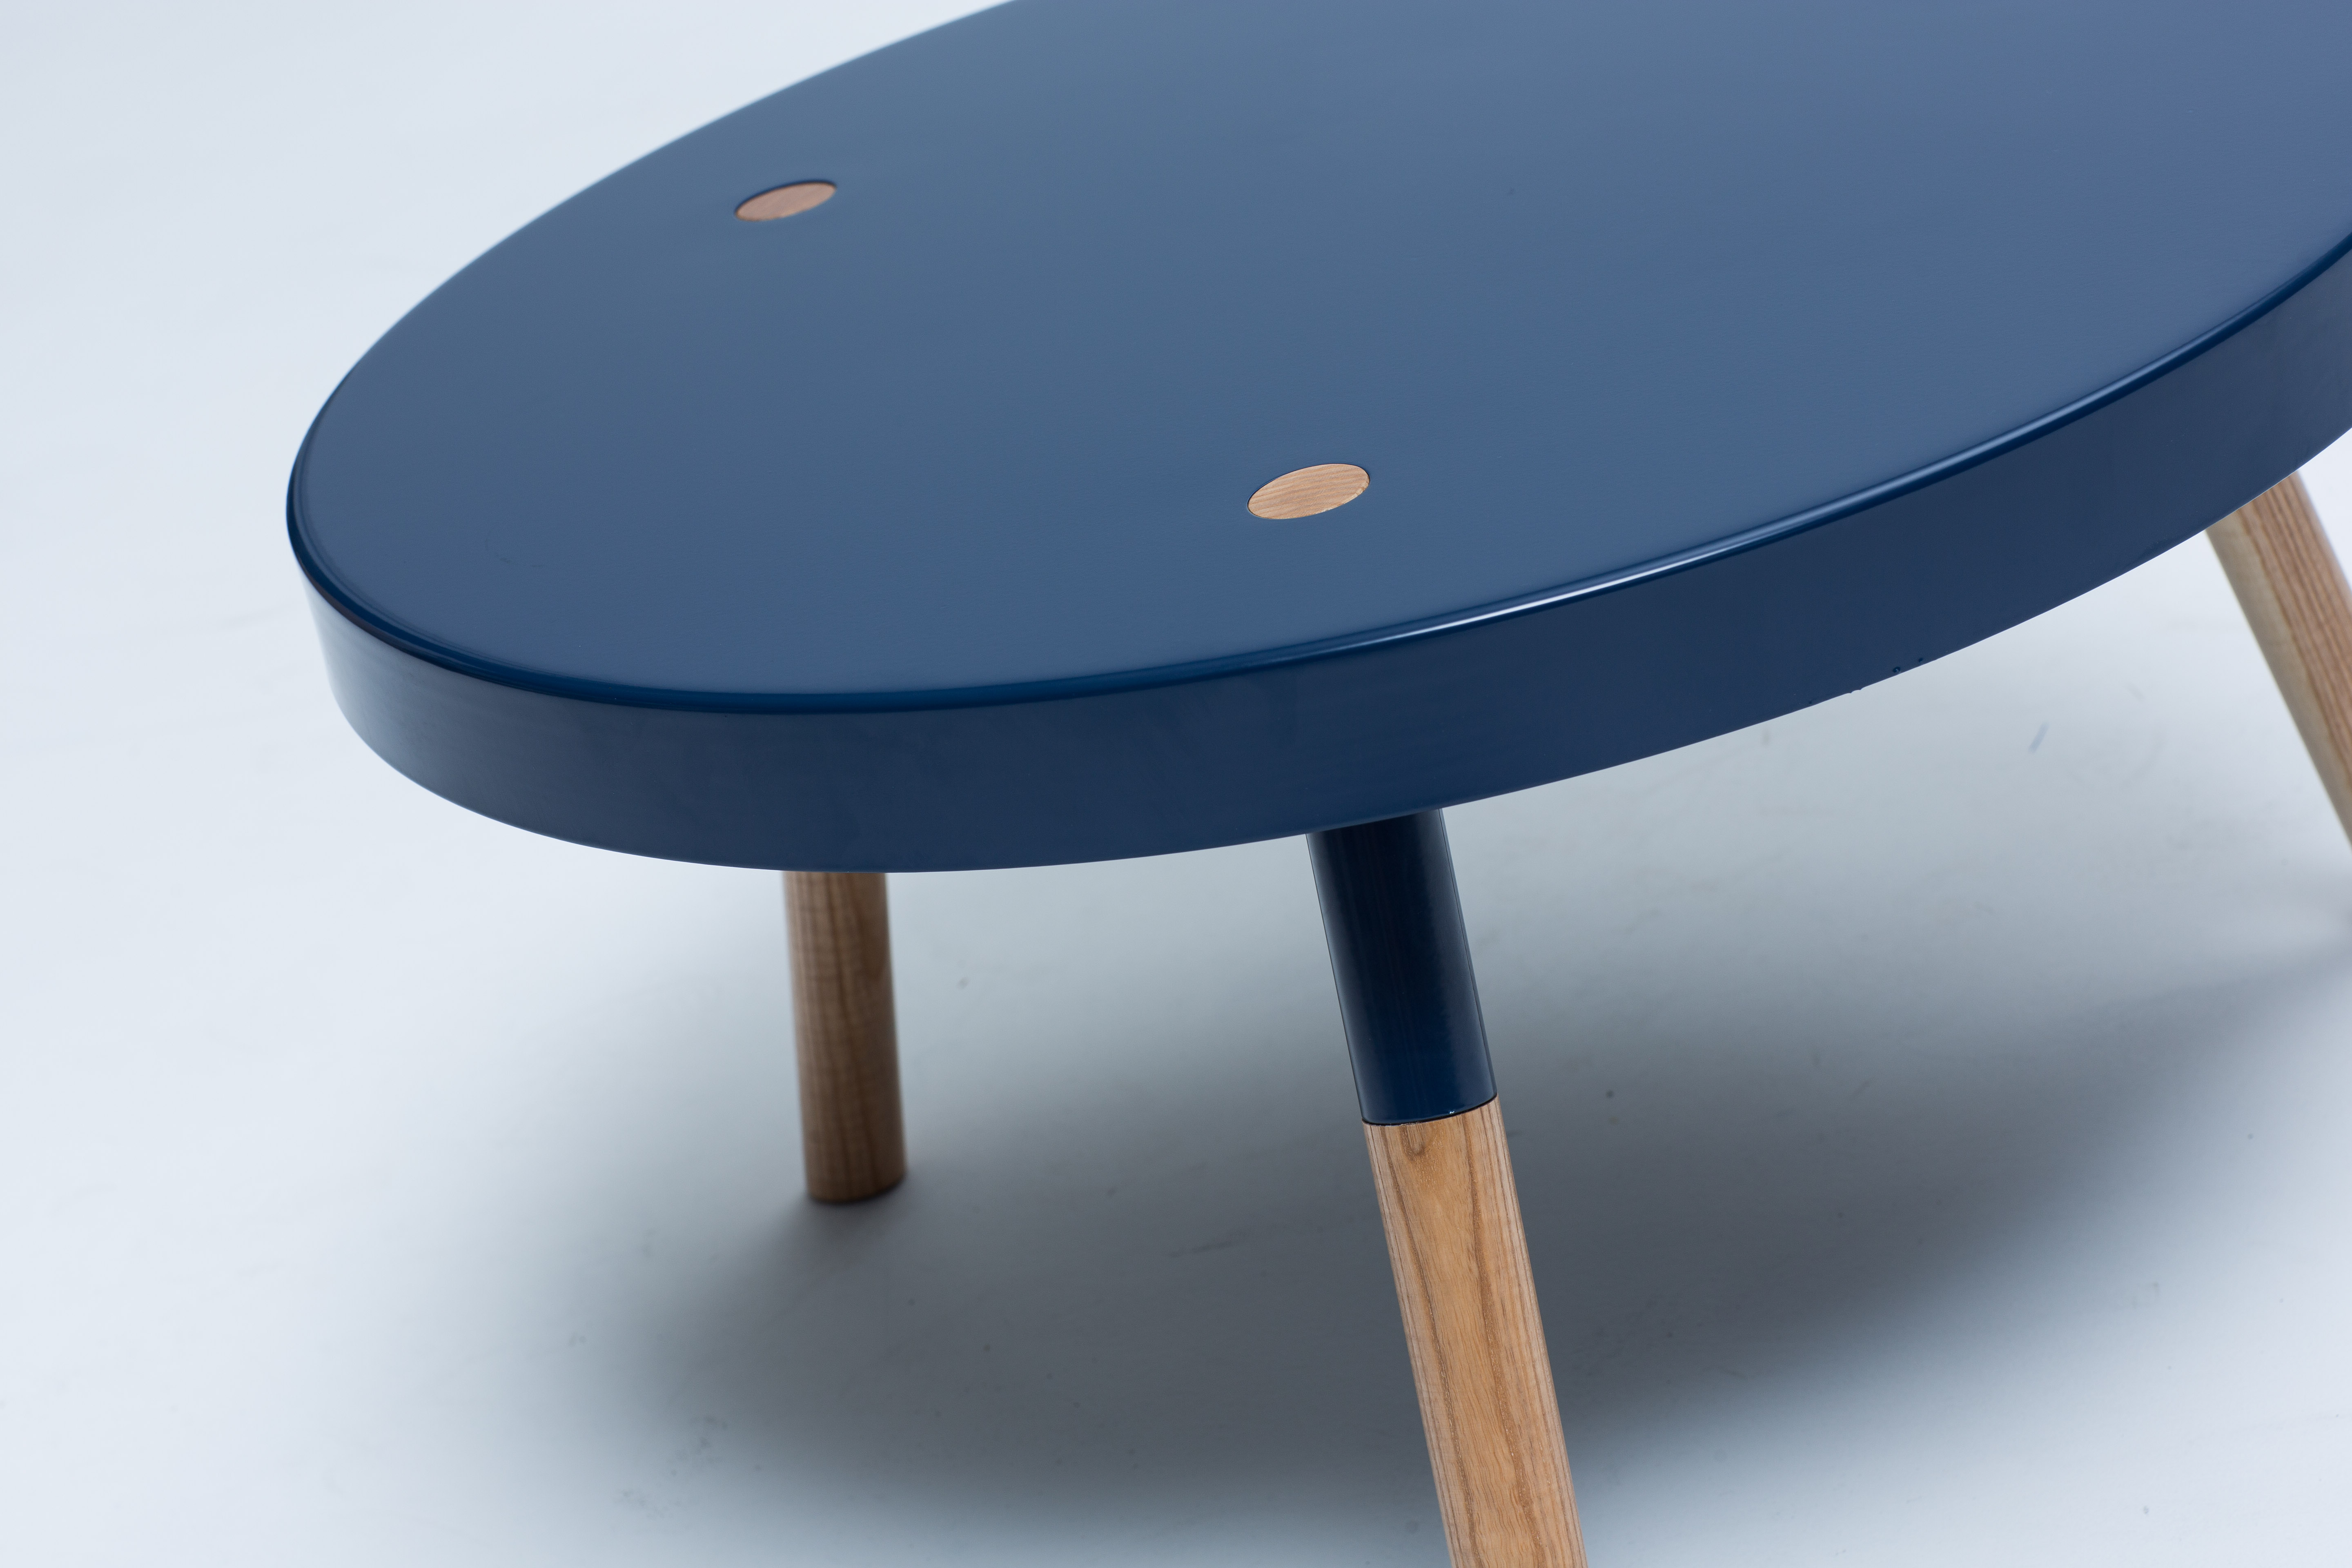 TIM WEBBER DESIGN Y Coffee Table 187 Archipro : large 5887272 053 from www.archipro.co.nz size 5760 x 3840 jpeg 1814kB